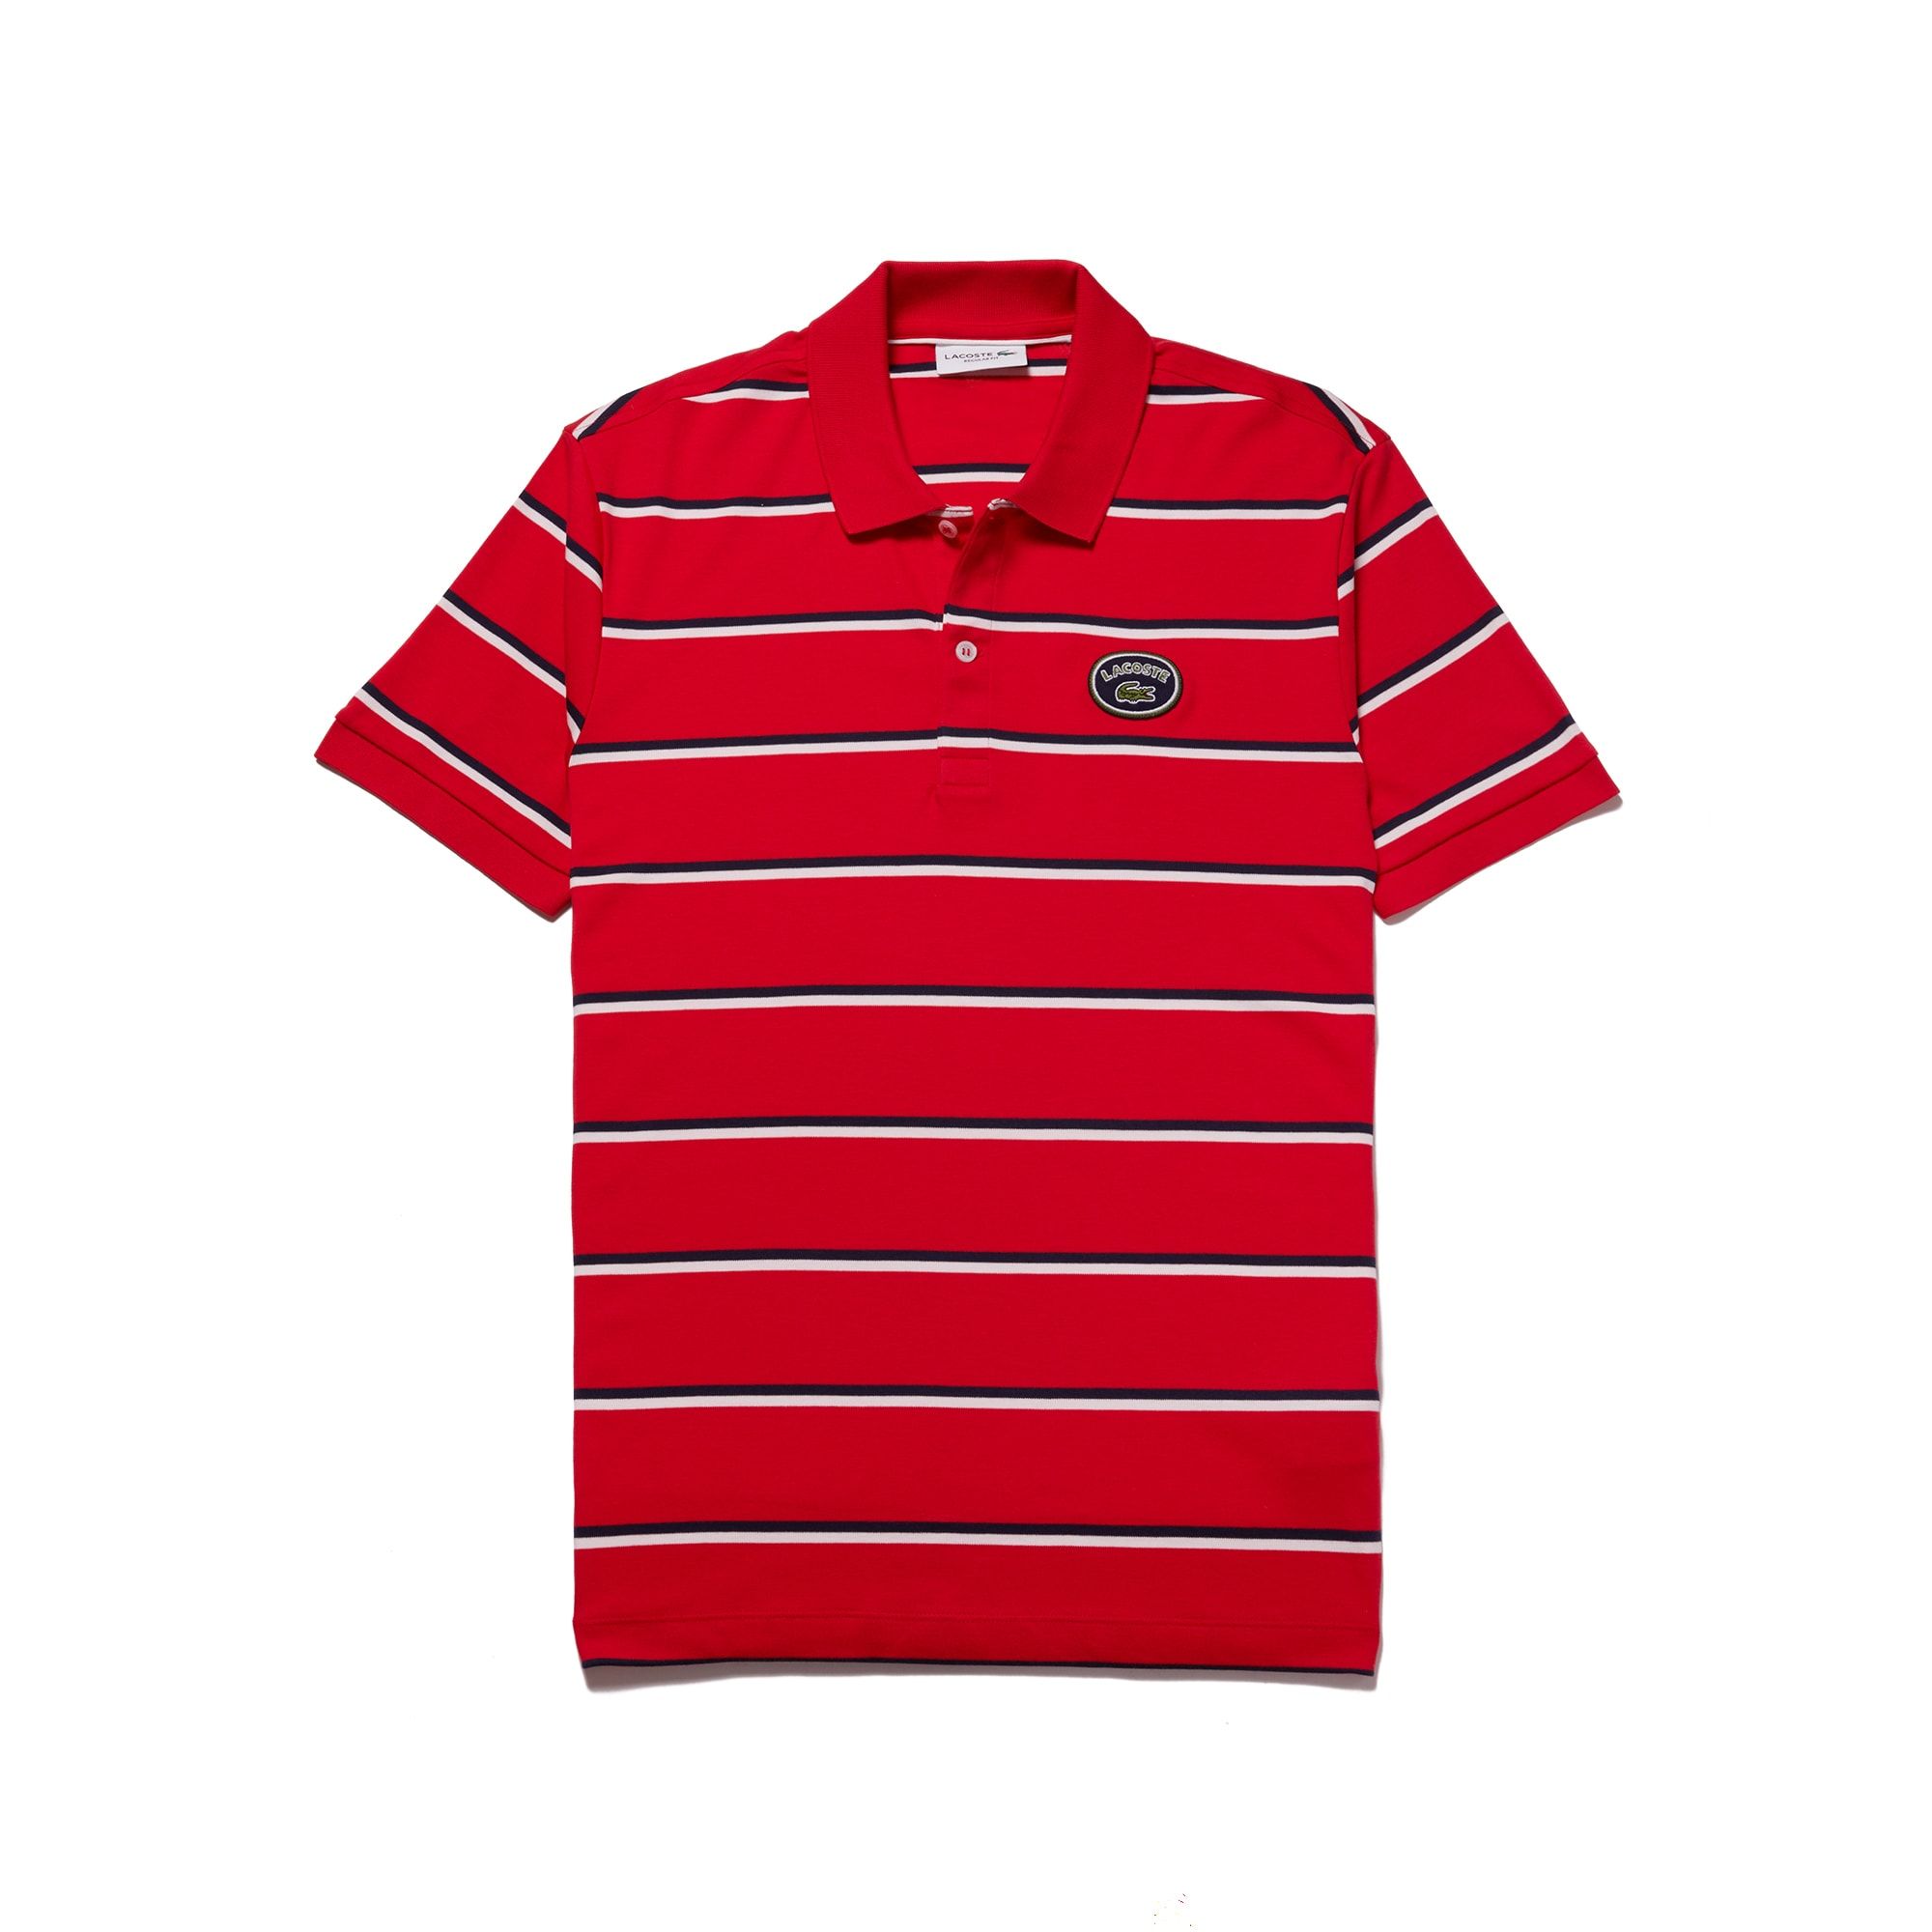 라코스테 Lacoste Mens Regular Fit Striped Cotton Interlock Polo,imperial red/flour-navy b